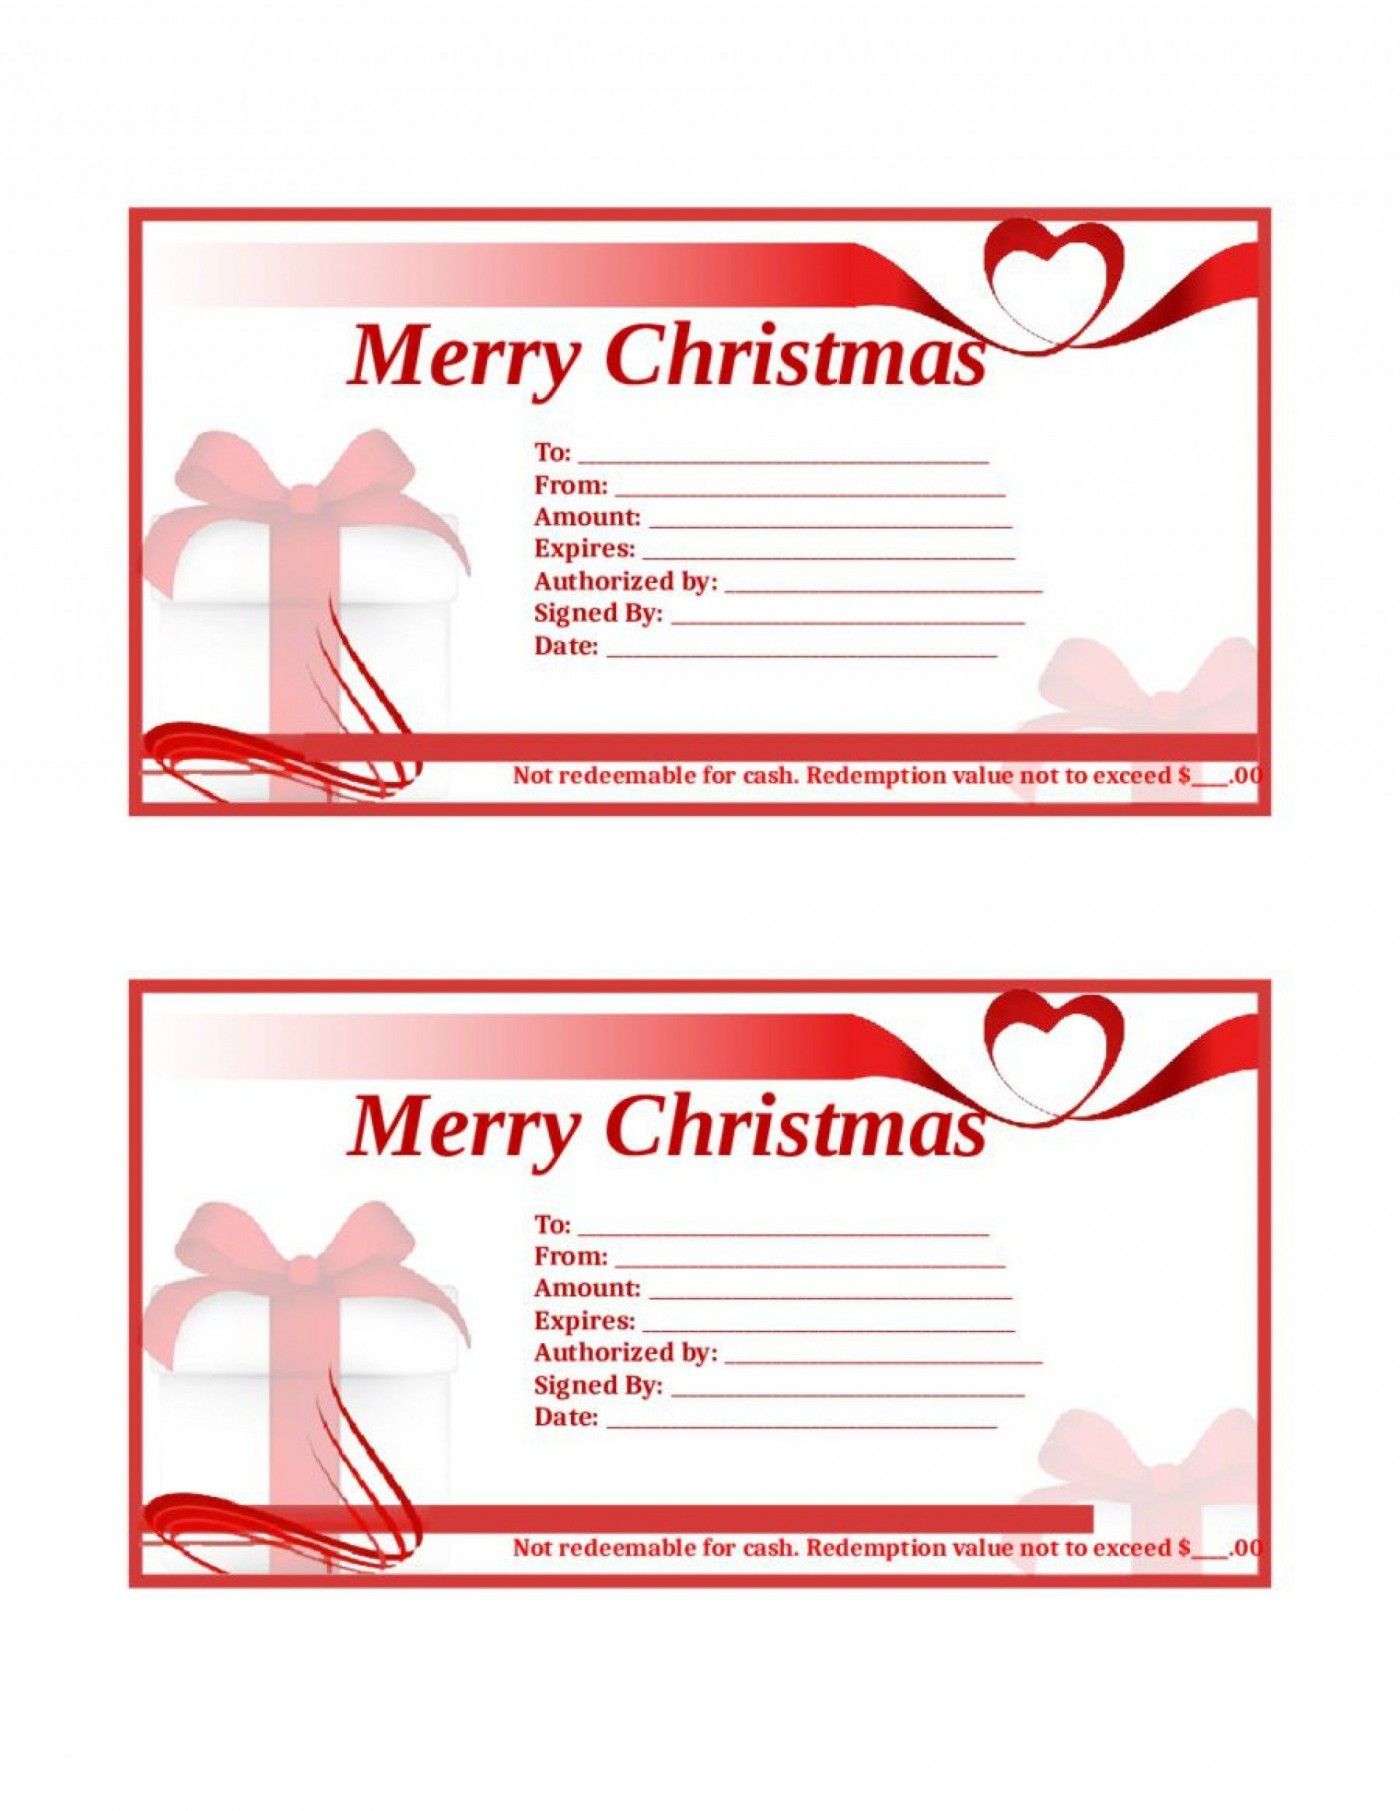 002 Surprising Template For Christma Gift Certificate Free Sample  Voucher Uk Editable Download Microsoft Word1400